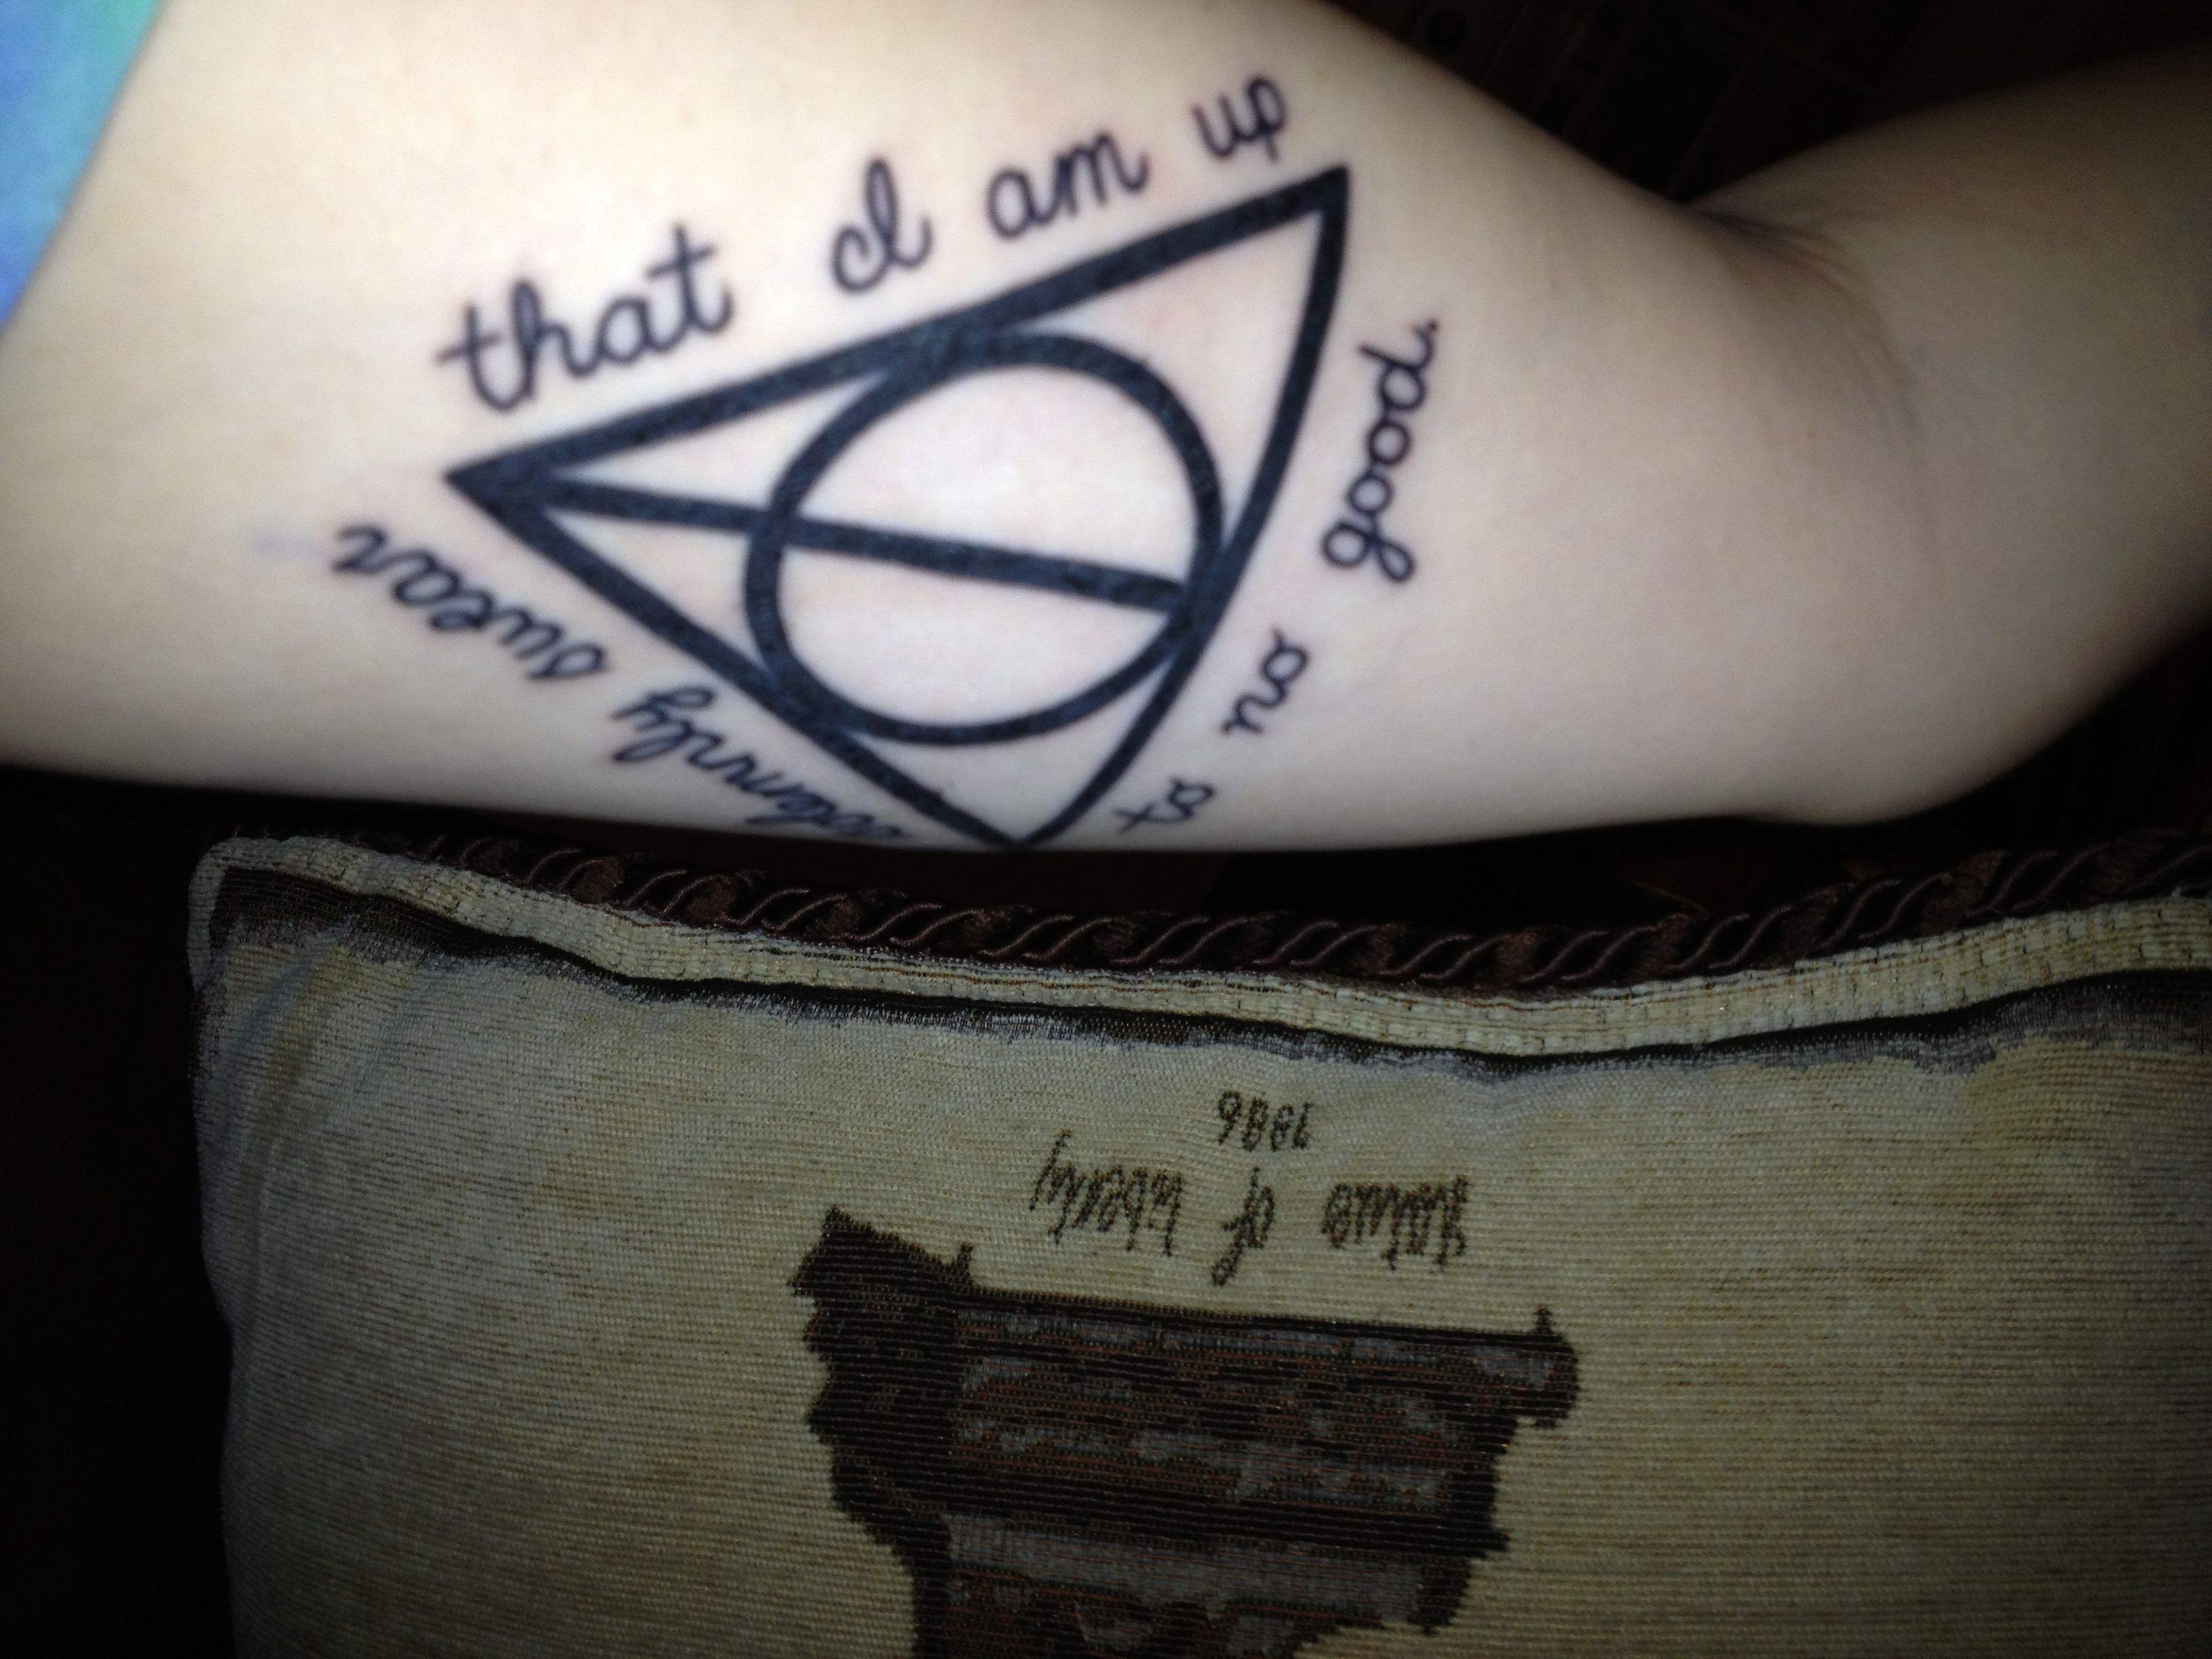 My deathly hallows symbol with i solemnly swear that i am up to my deathly hallows symbol with i solemnly swear that i am up to no biocorpaavc Choice Image